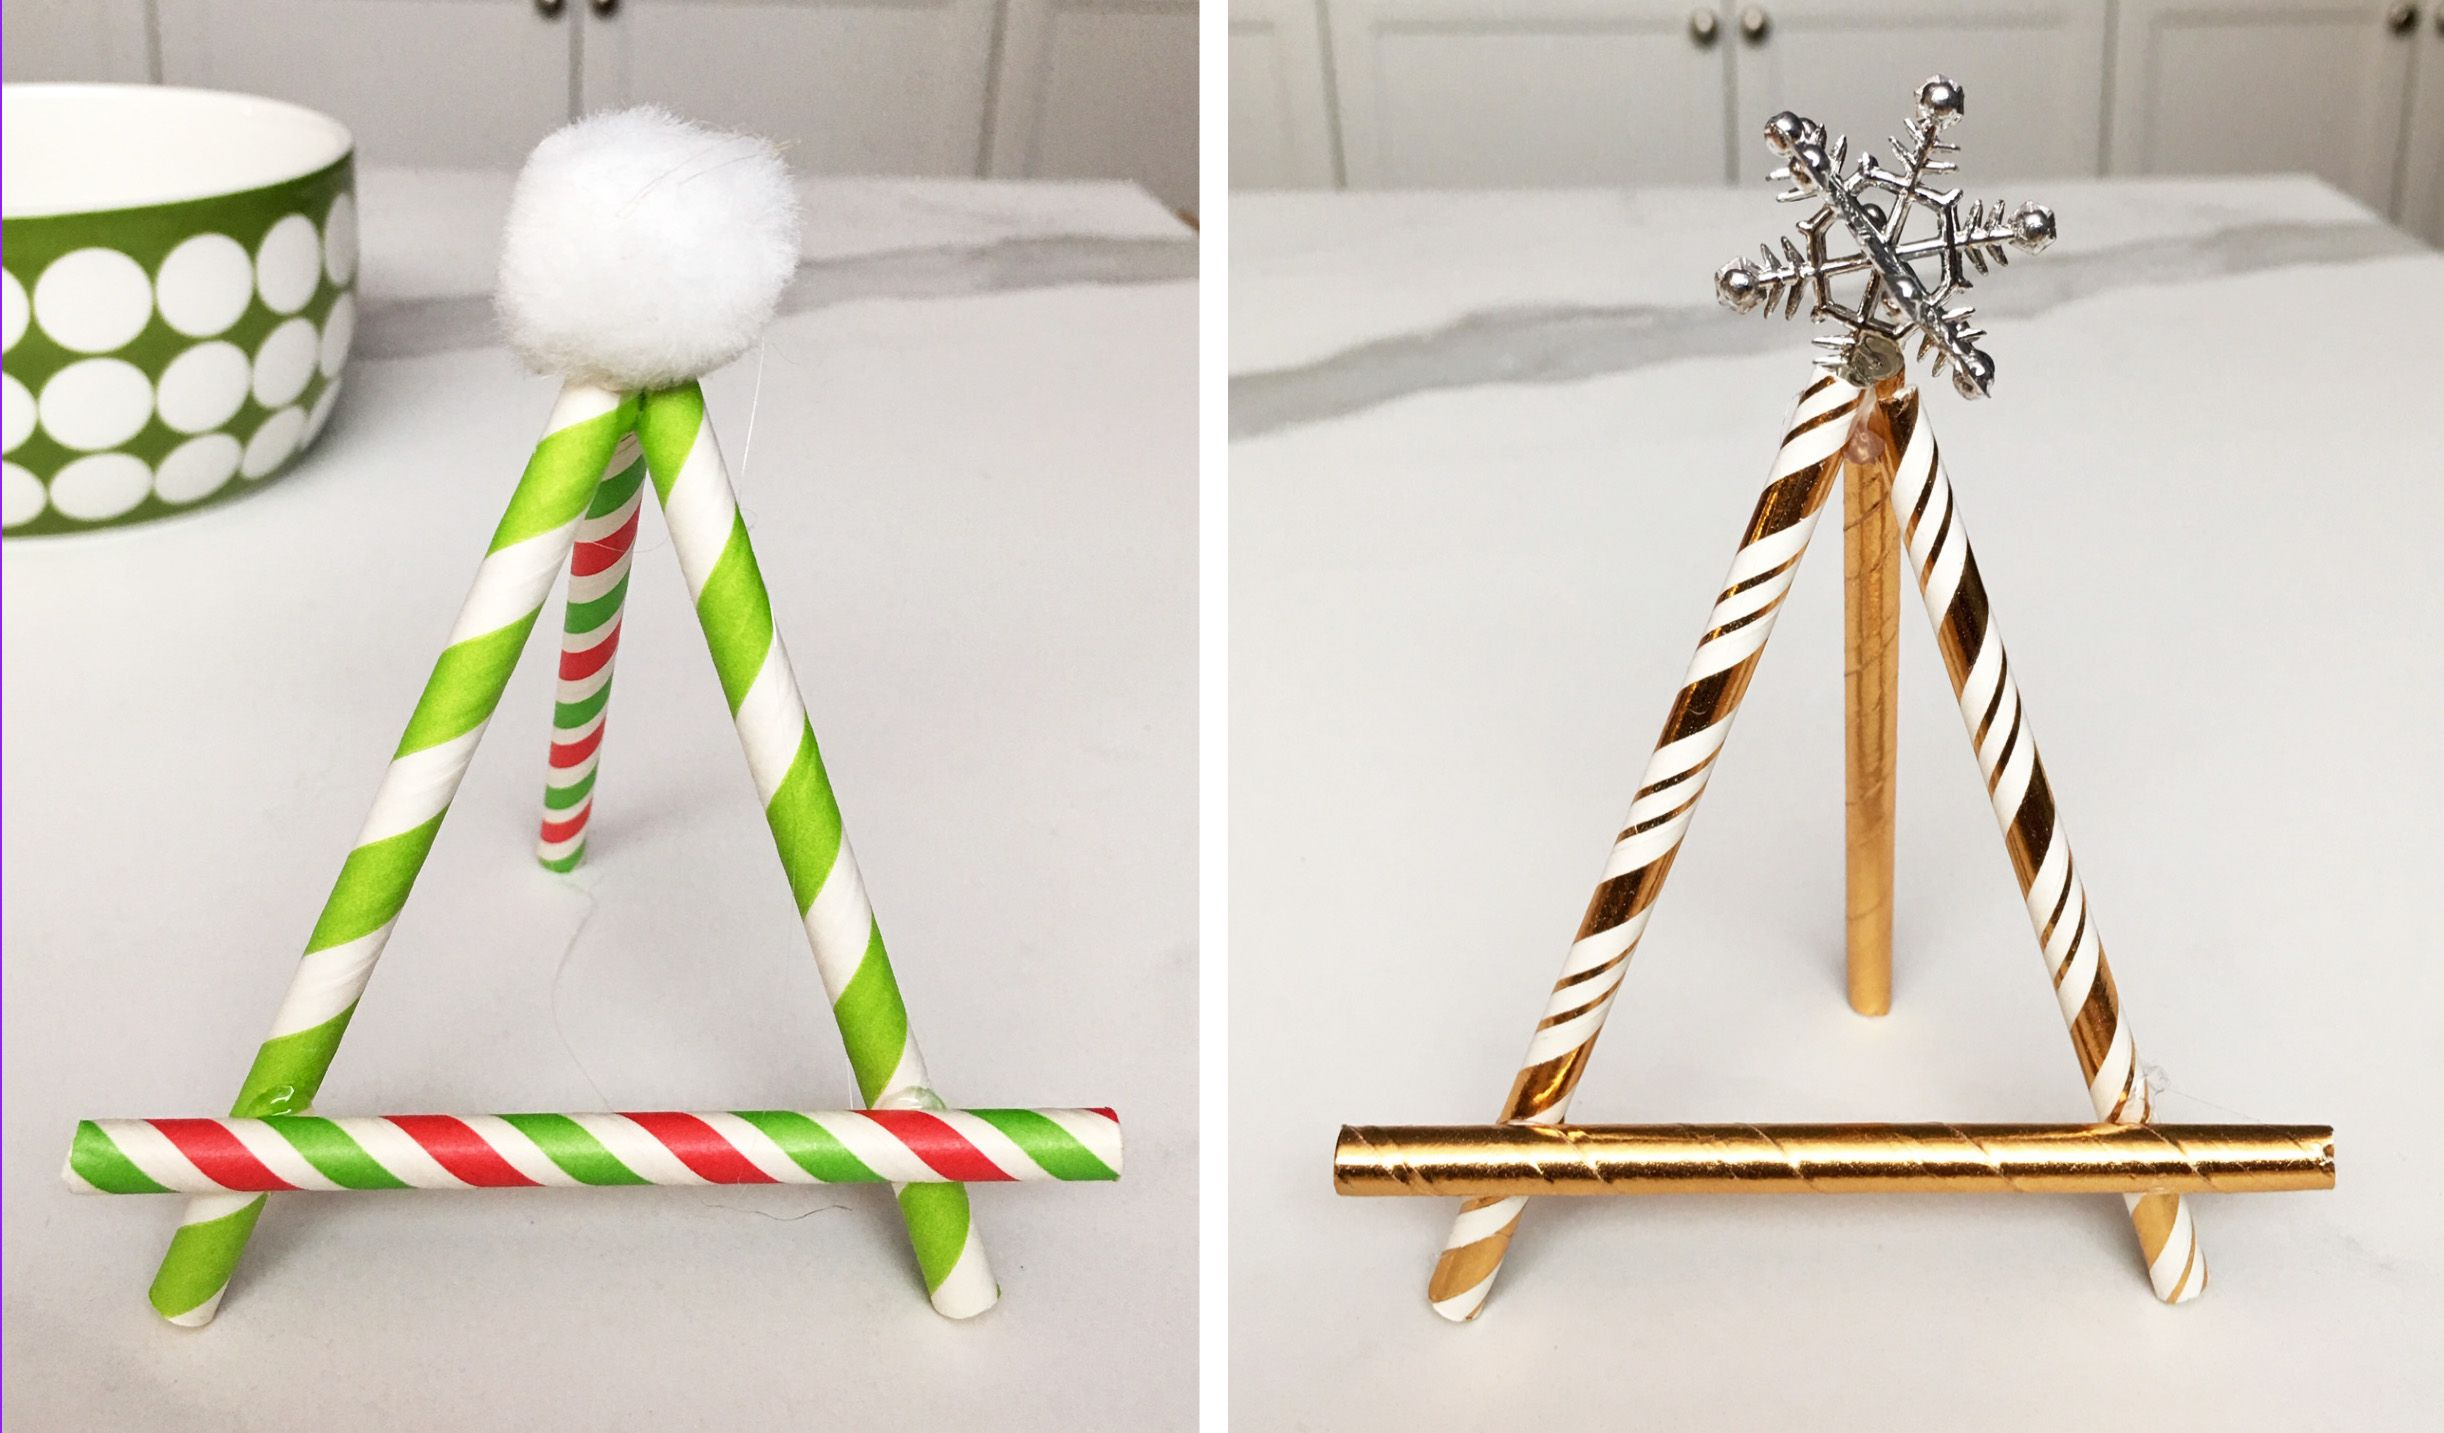 2 green and gold festive place card holders made out of paper straws